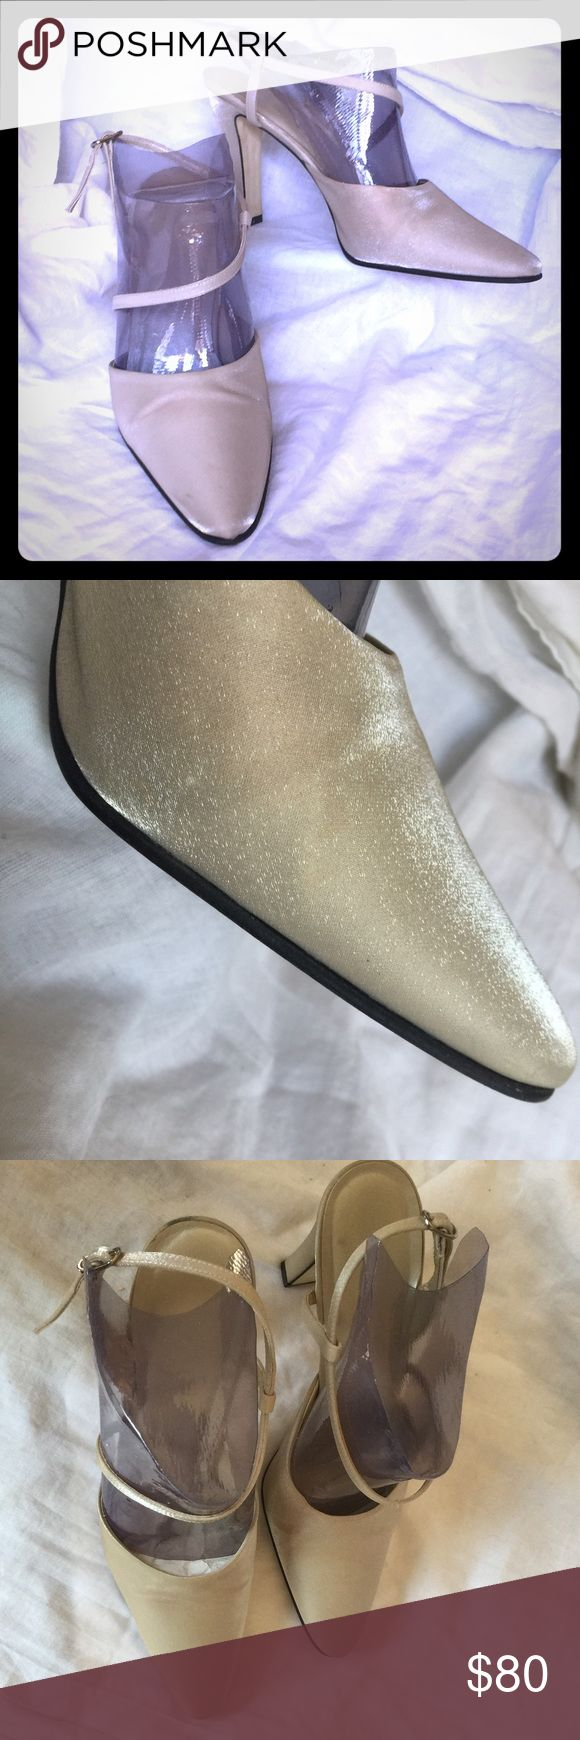 Nine West iridescent champagne heels I fell in love with these shoes when I found them. Champagne colored w/a sheen that reflects light, these are more interesting than your ordinary shoes. Worn once for an outdoor wedding, the bottom of the heels have evidence of walking outside. There are a few marks, but none are visible when wearing them. They have been hanging in a box for a while & the inside of the straps are flaking a bit. If I kept them, I would just brush it away & I think clear…